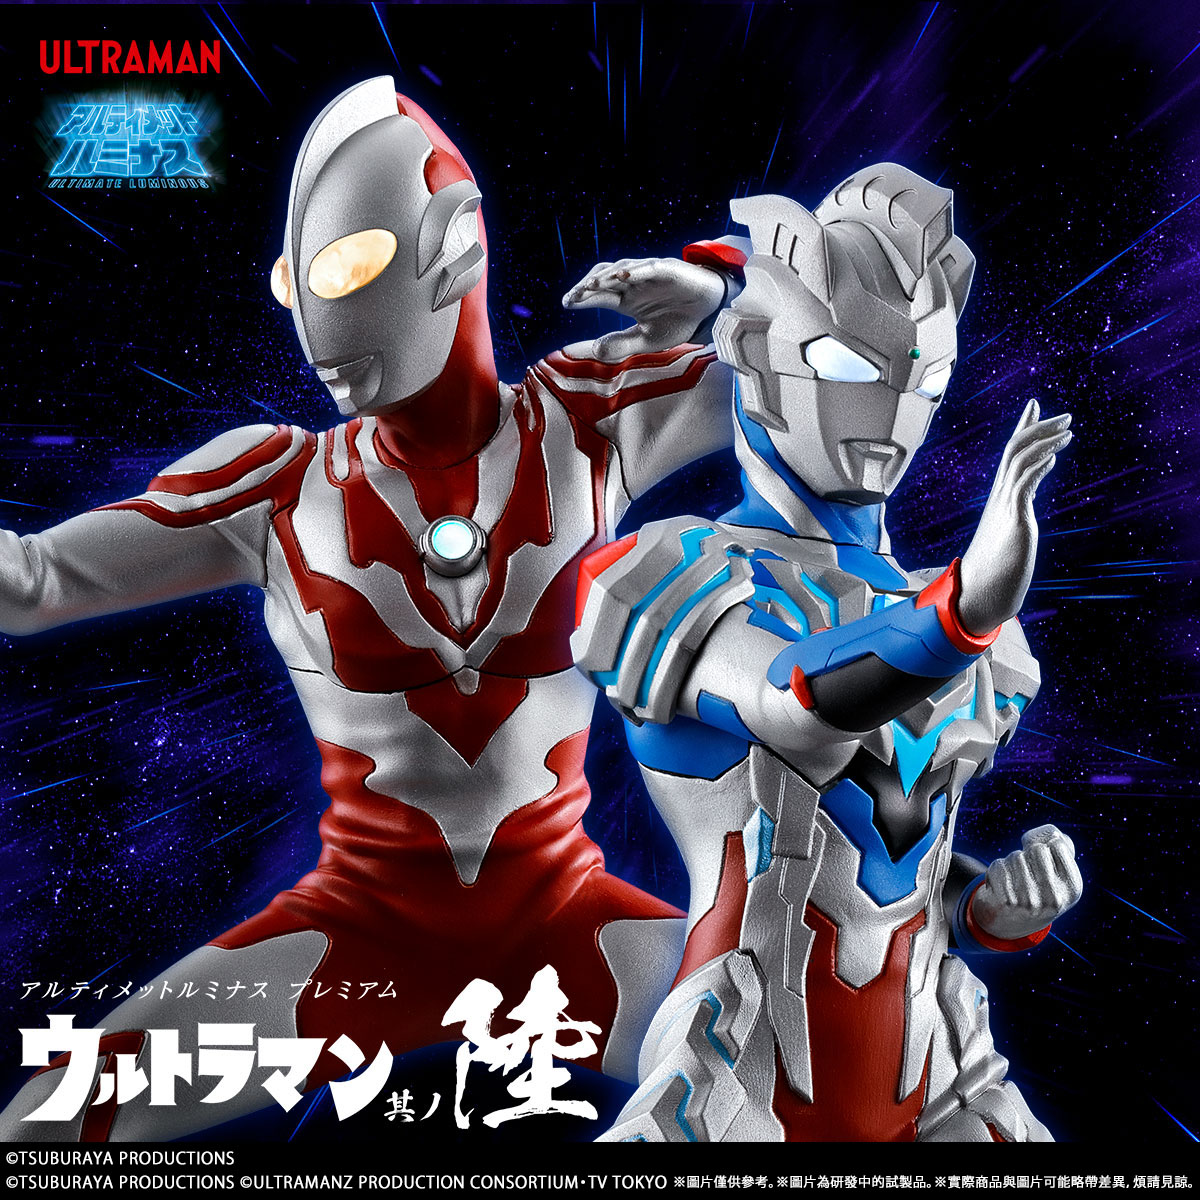 ULTIMATE LUMINOUS PREMIUM ULTRAMAN 6